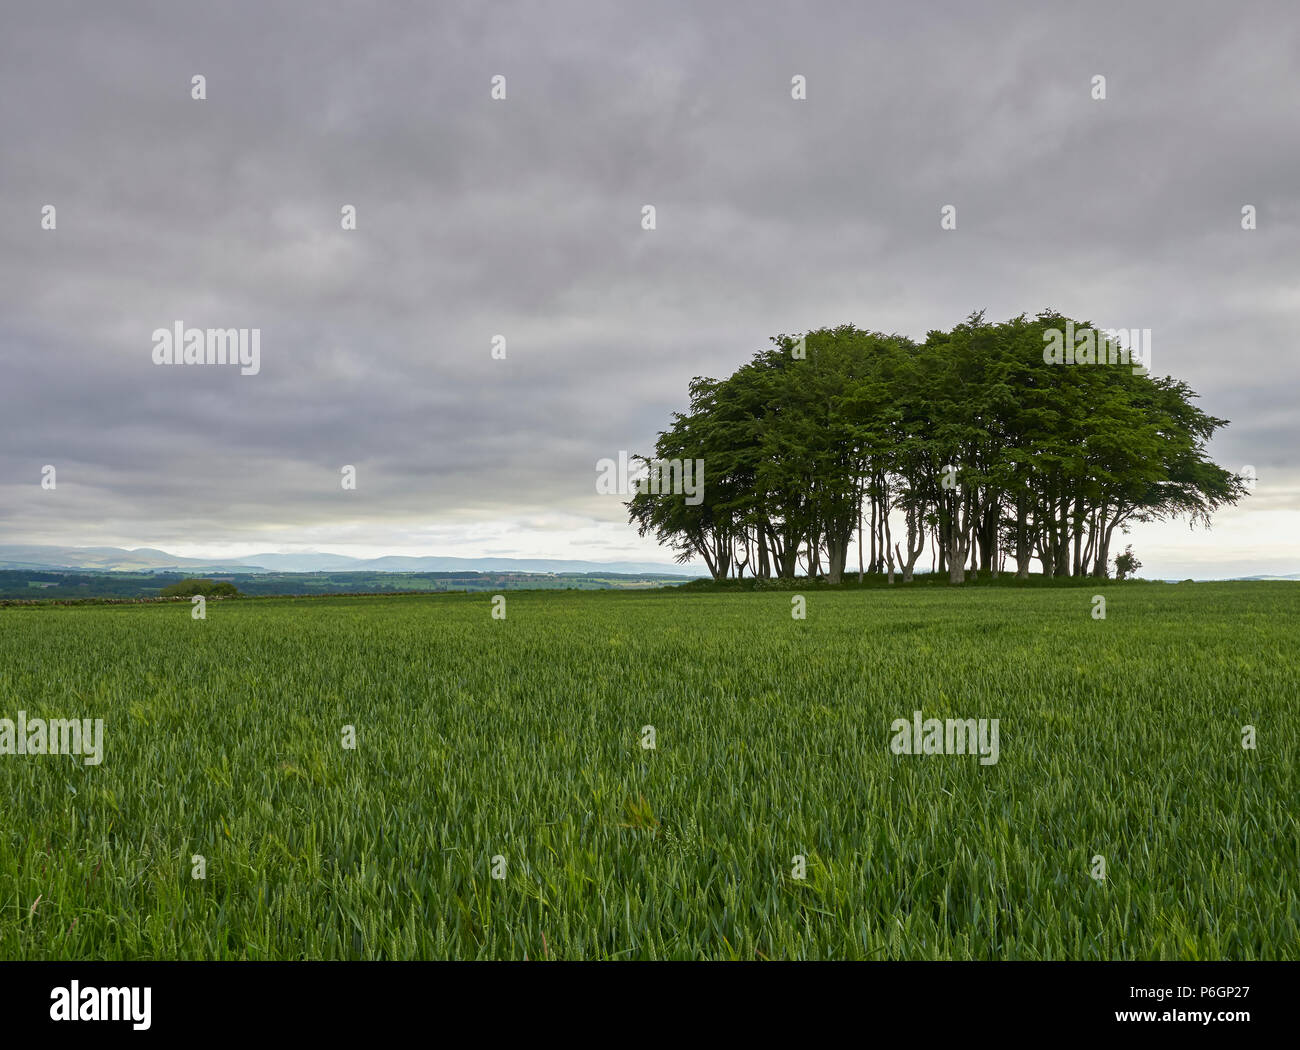 Mature Trees on a slightly raised Ground Feature in a Wheat Field near Farnell in Angus, Scotland. - Stock Image